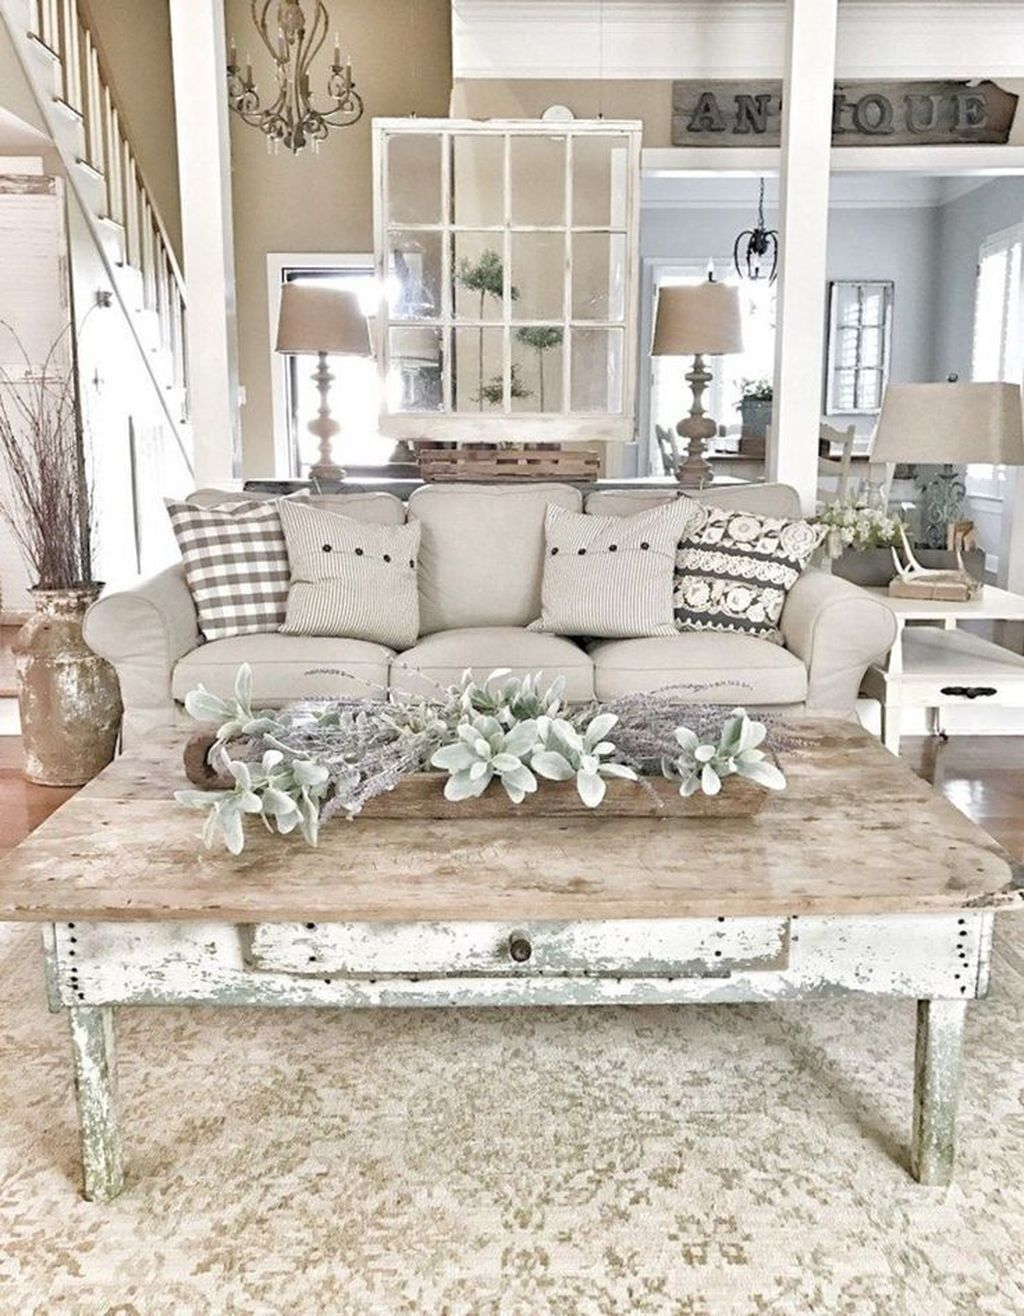 88 rustic farmhouse living room decor ideas pinterest for Rustic curtains for living room